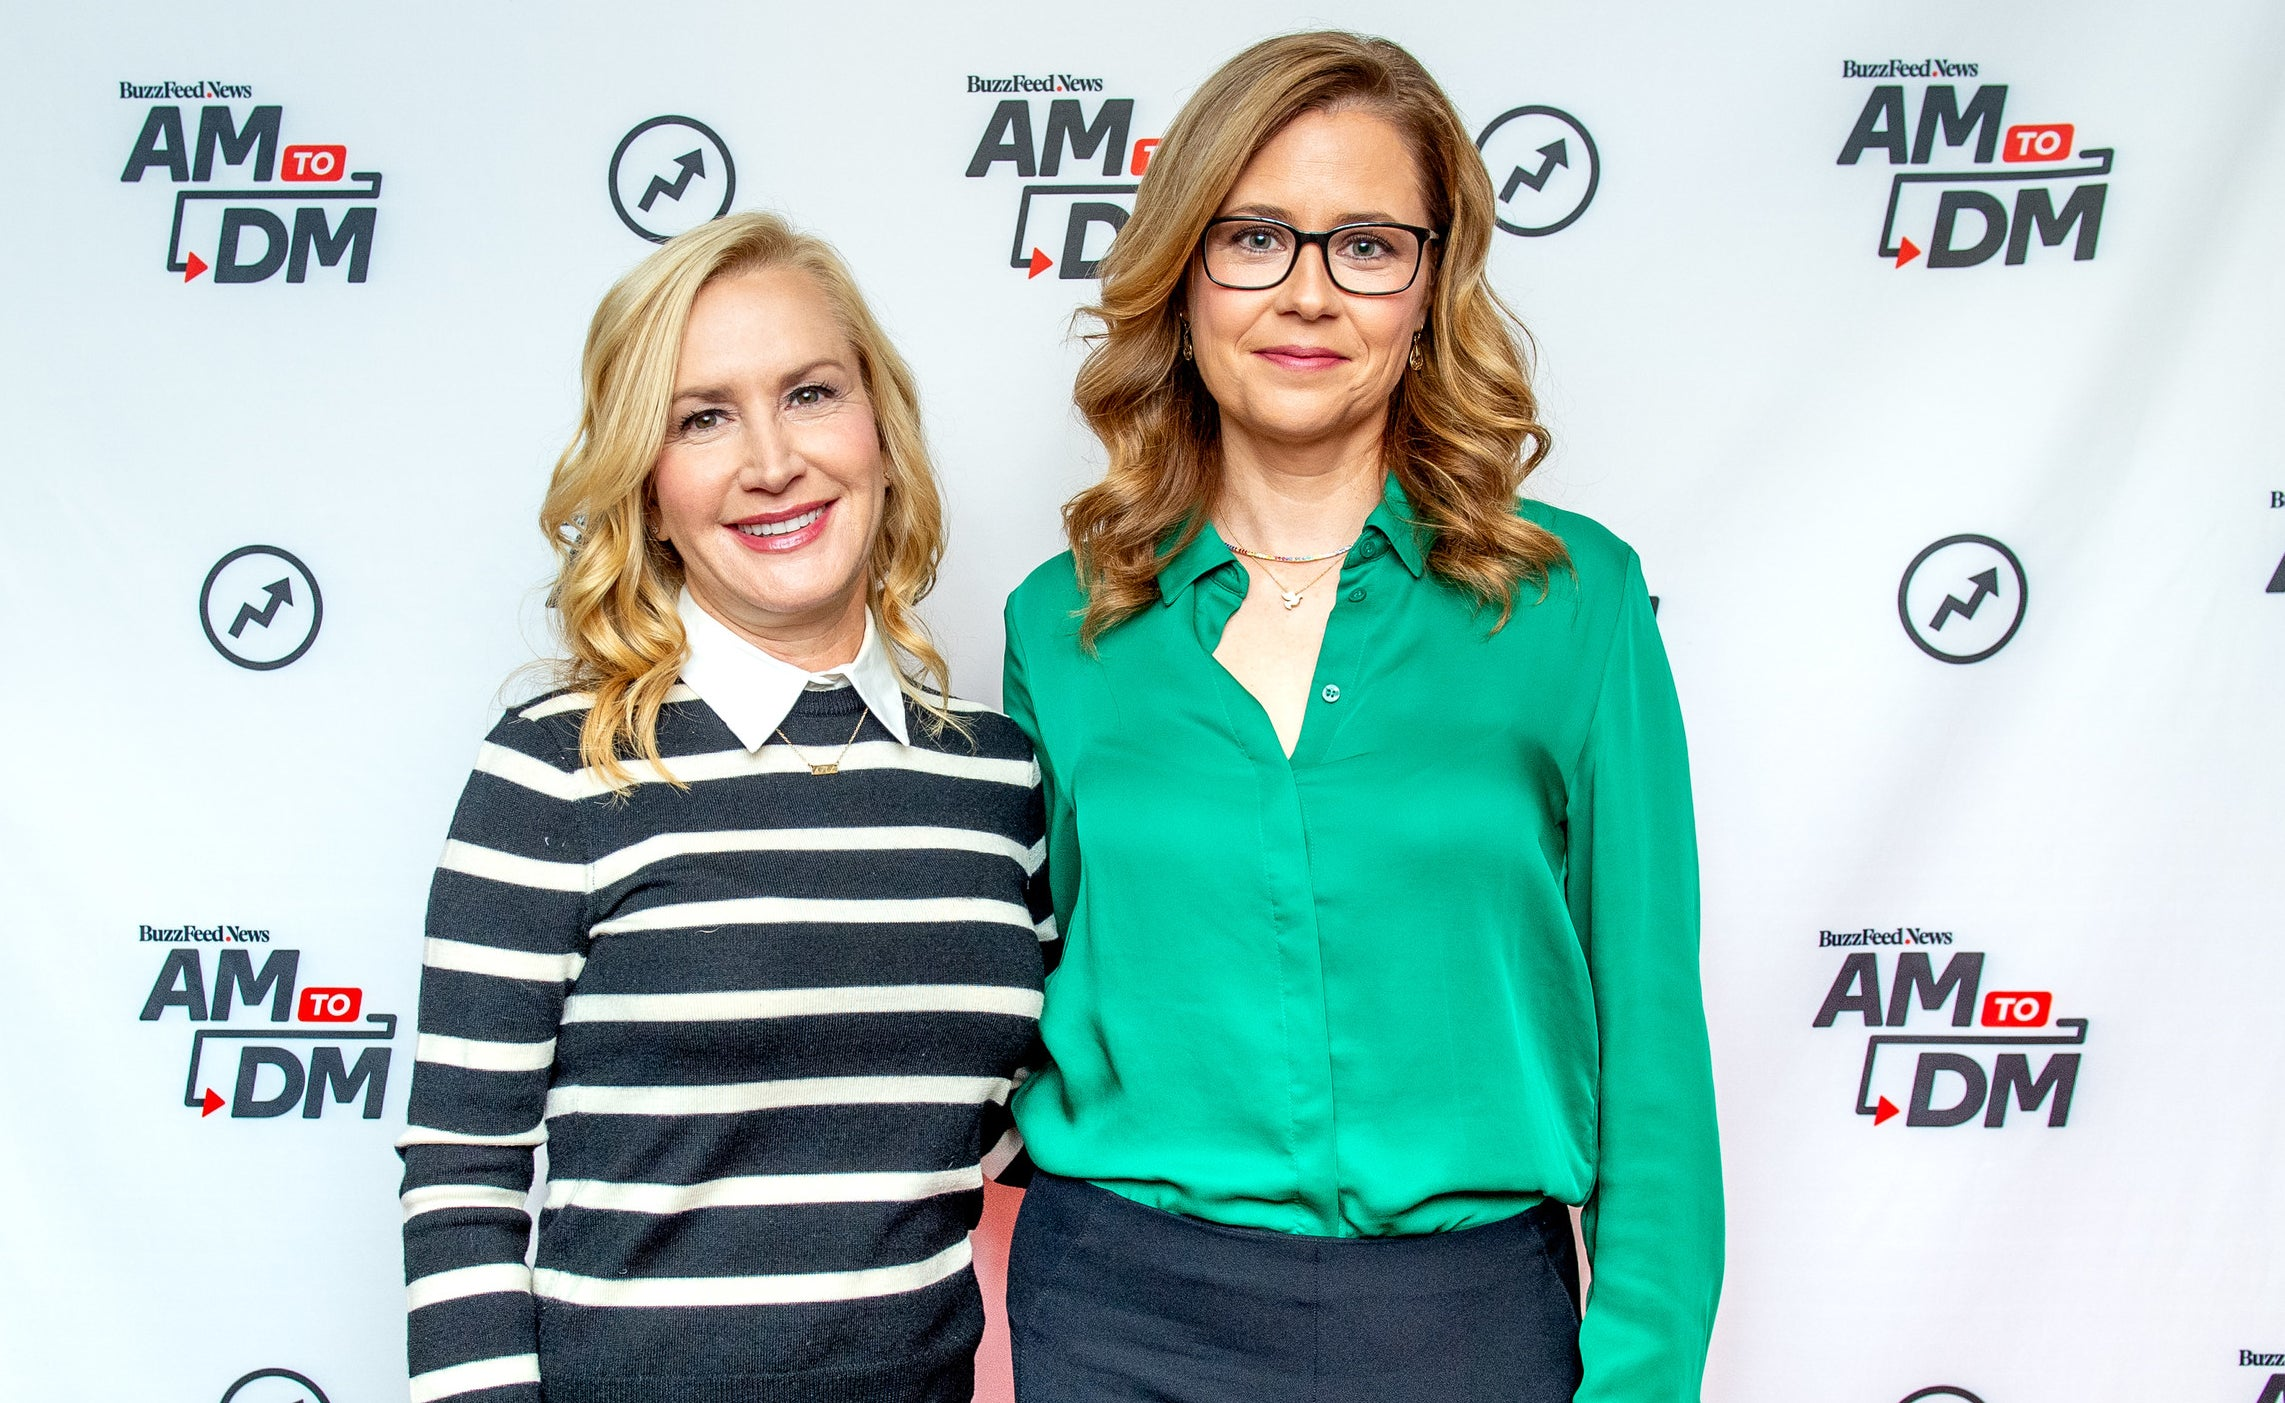 Jenna and Angela pose together while promoting their podcast